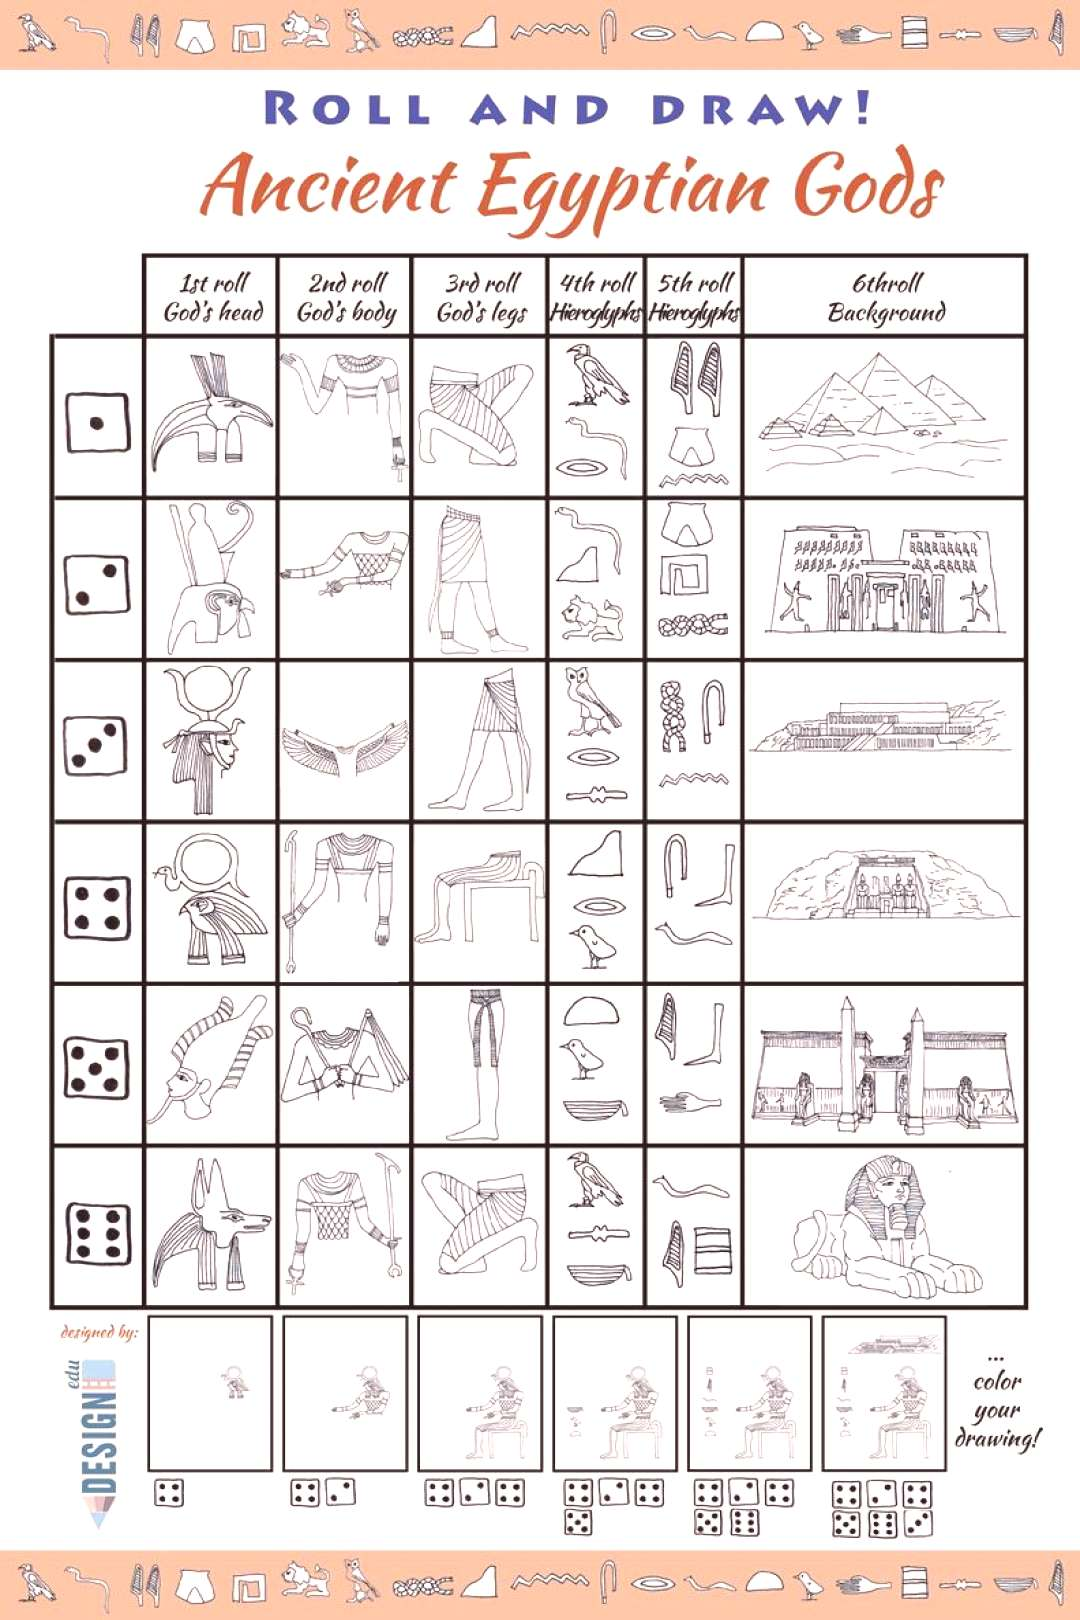 Roll and Draw! Ancient Egypt - Roll and Draw art game – learning about Ancient Egyptian Gods and